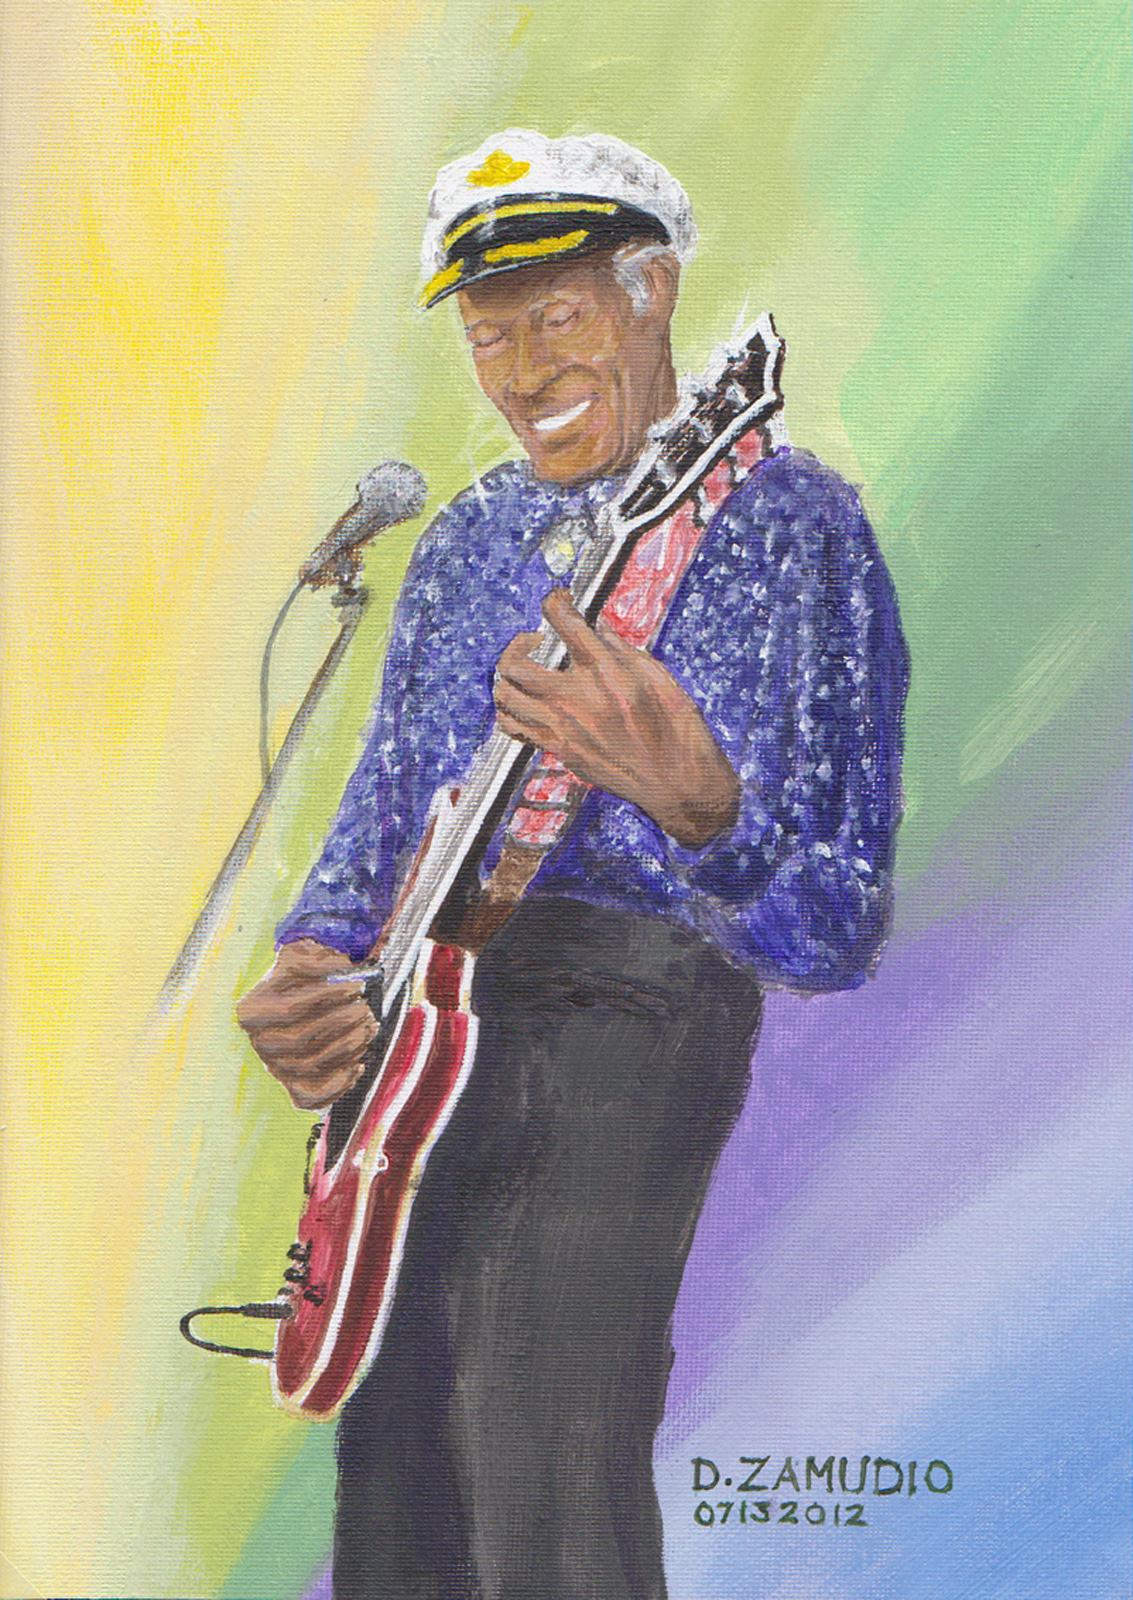 Chuck Berry plays guitar on stage, Rock n Roll icon, Gibson electric guitar, pastel colors, Blue berry hill restaurant, University City, MO, entertainer, by artist David Zamudio